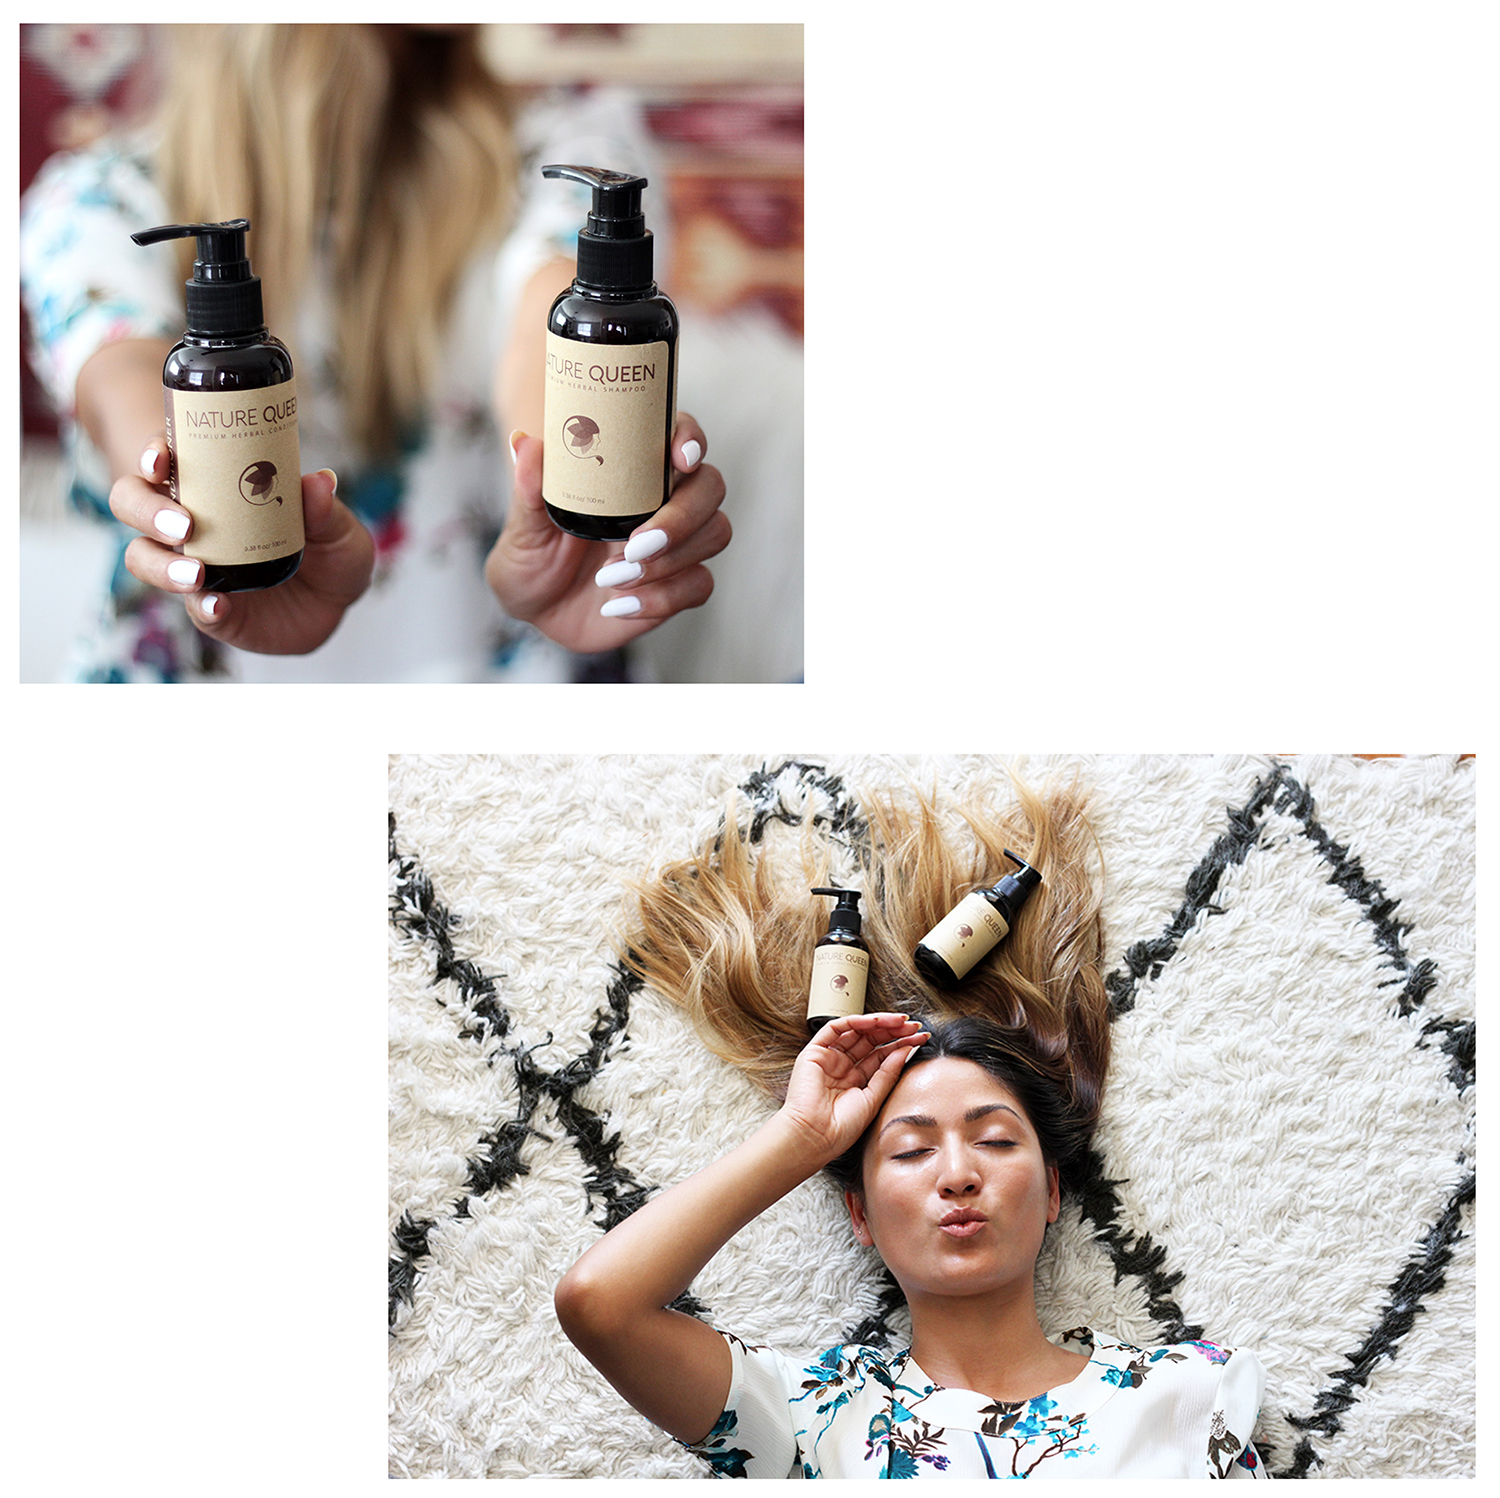 nature queen, beauty, hair, shampoo, conditioner, natural, all organic, nature queen beauty, melrodbeauty, melrodbeauty, la blogger,er beauty blogger, fashion blogger, trending, hair goals,